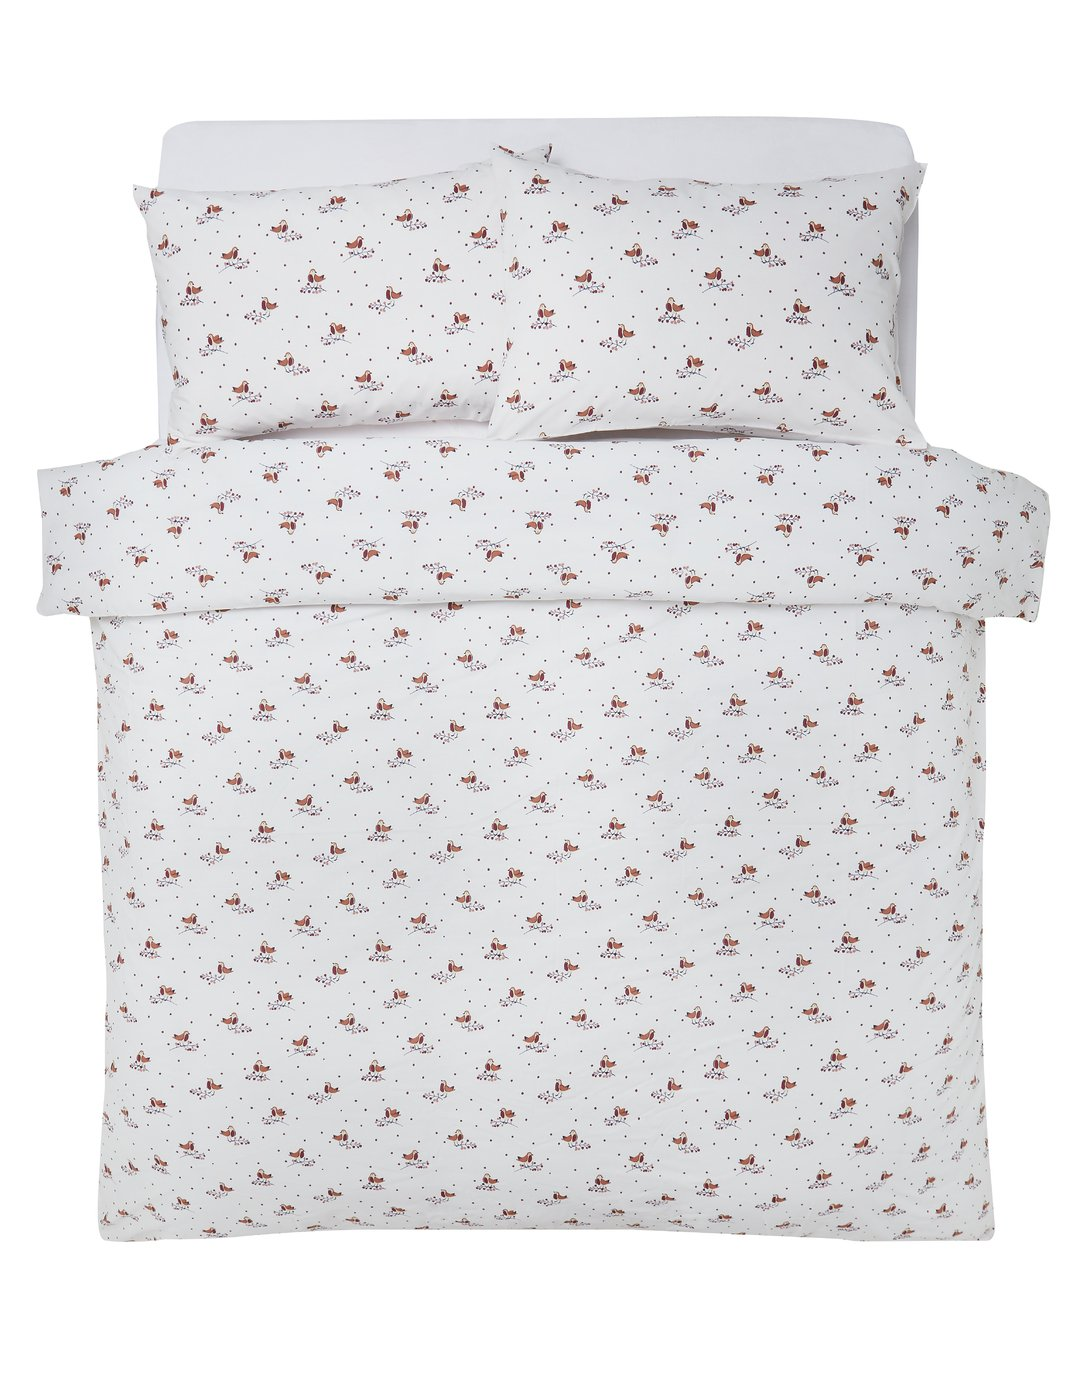 Argos Home Robin Bedding Set - Double